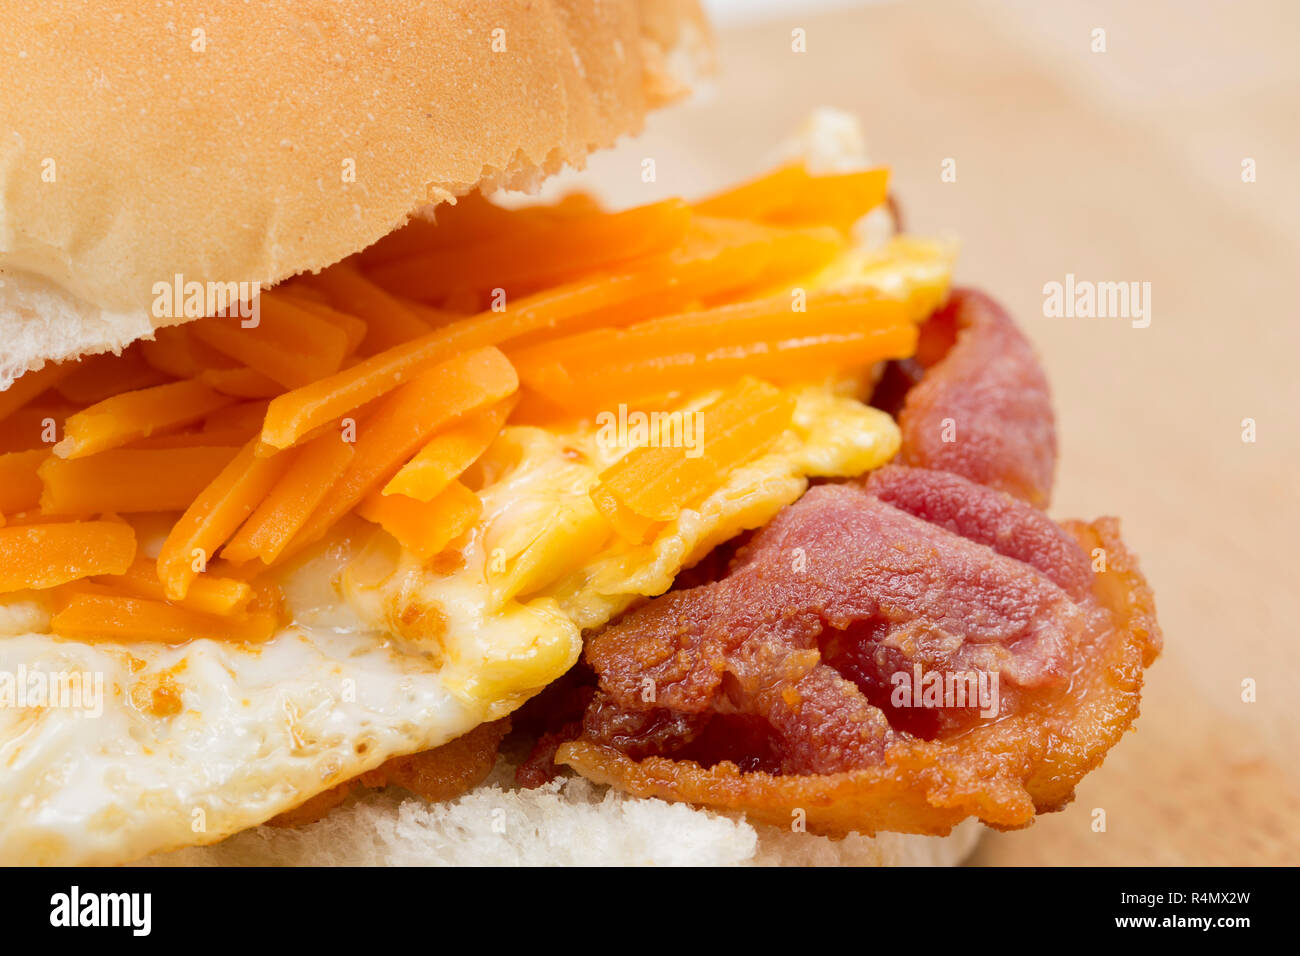 Smoked back bacon produced in the EU and bought from a UK supermarket that has been fried and placed on a bread roll with a fried egg and a sprinkling - Stock Image